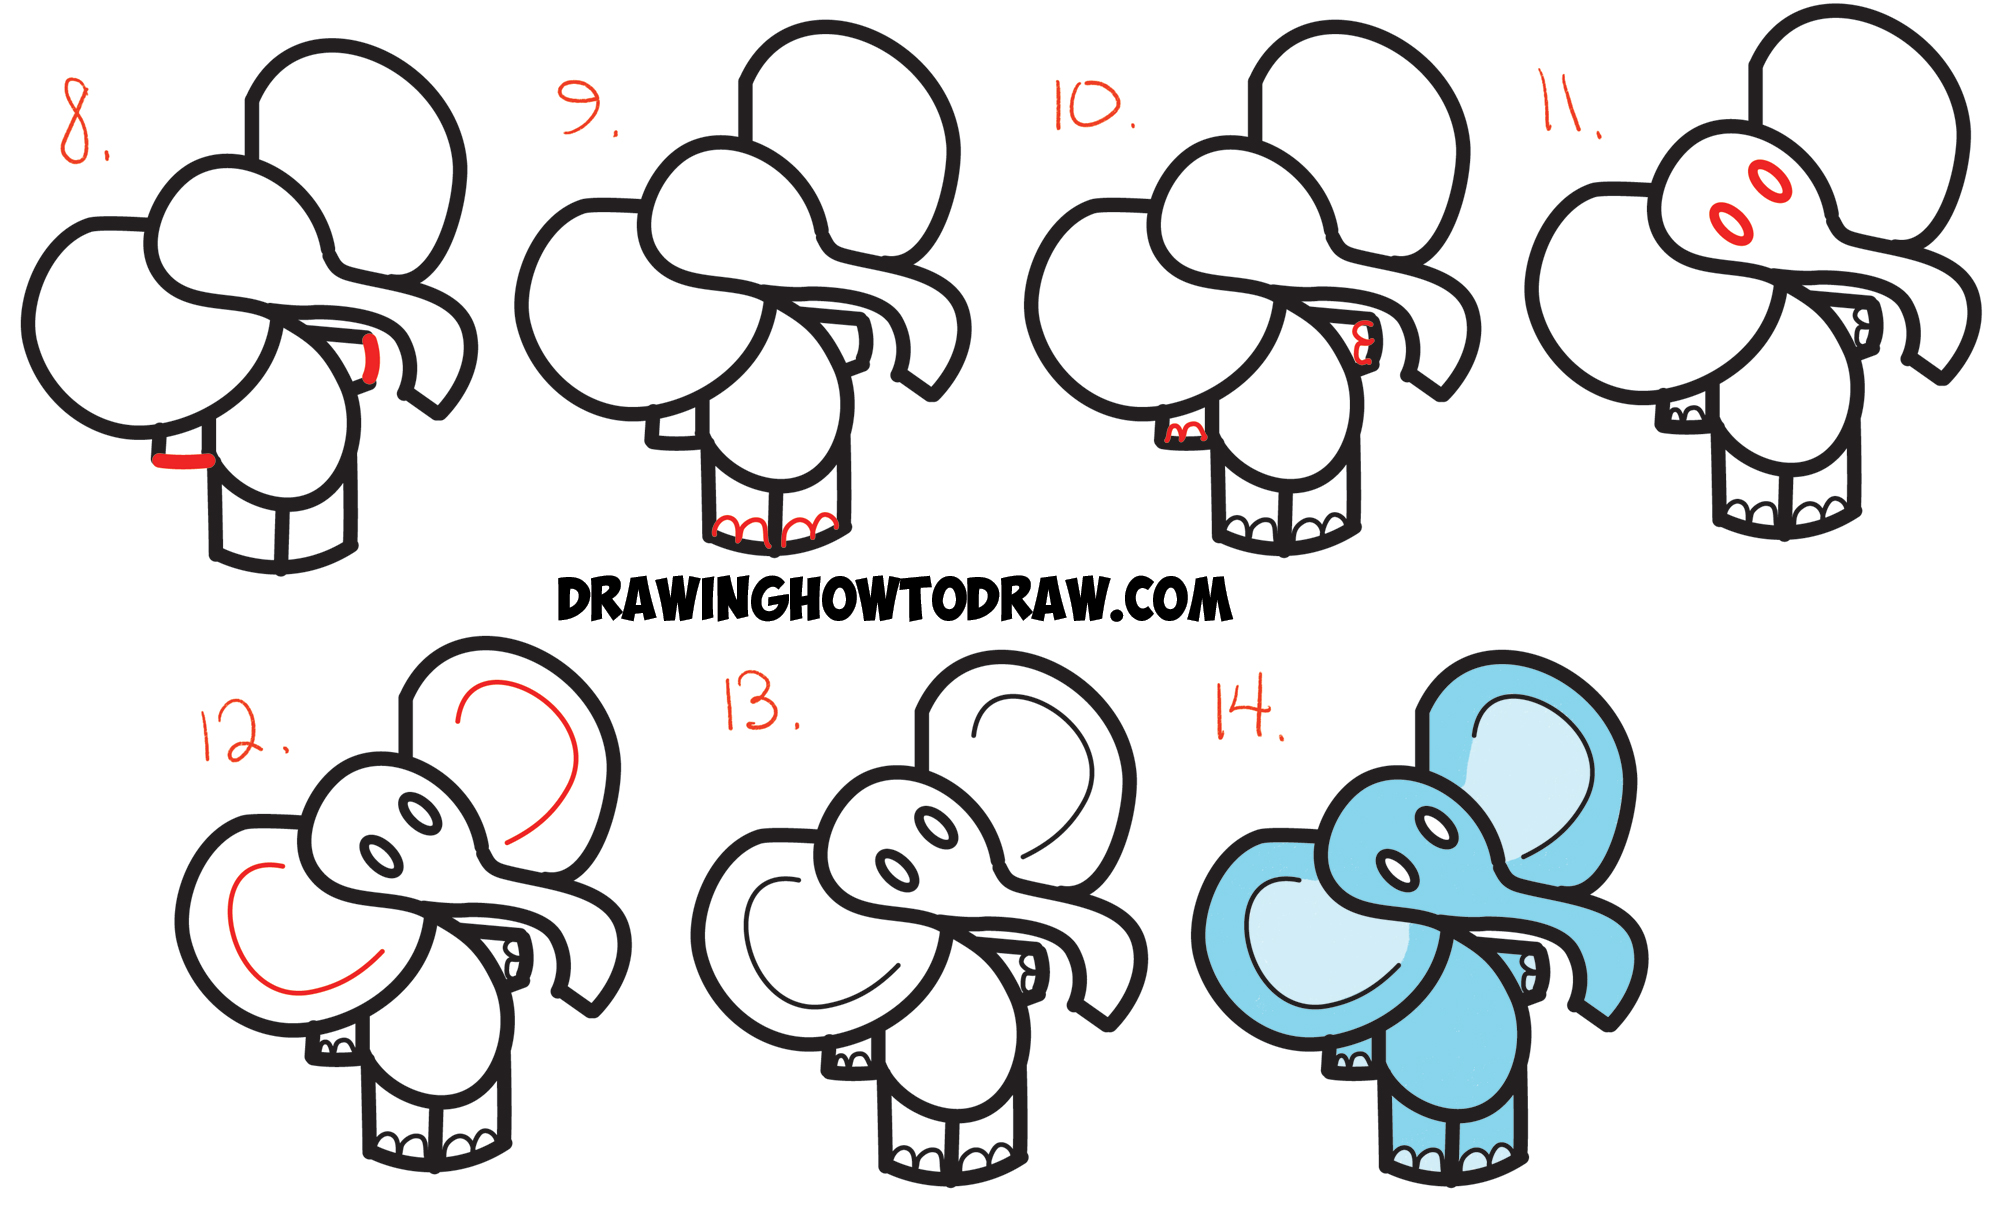 How to Draw Cartoon Elephant from the Dollar Sign  Easy Step by